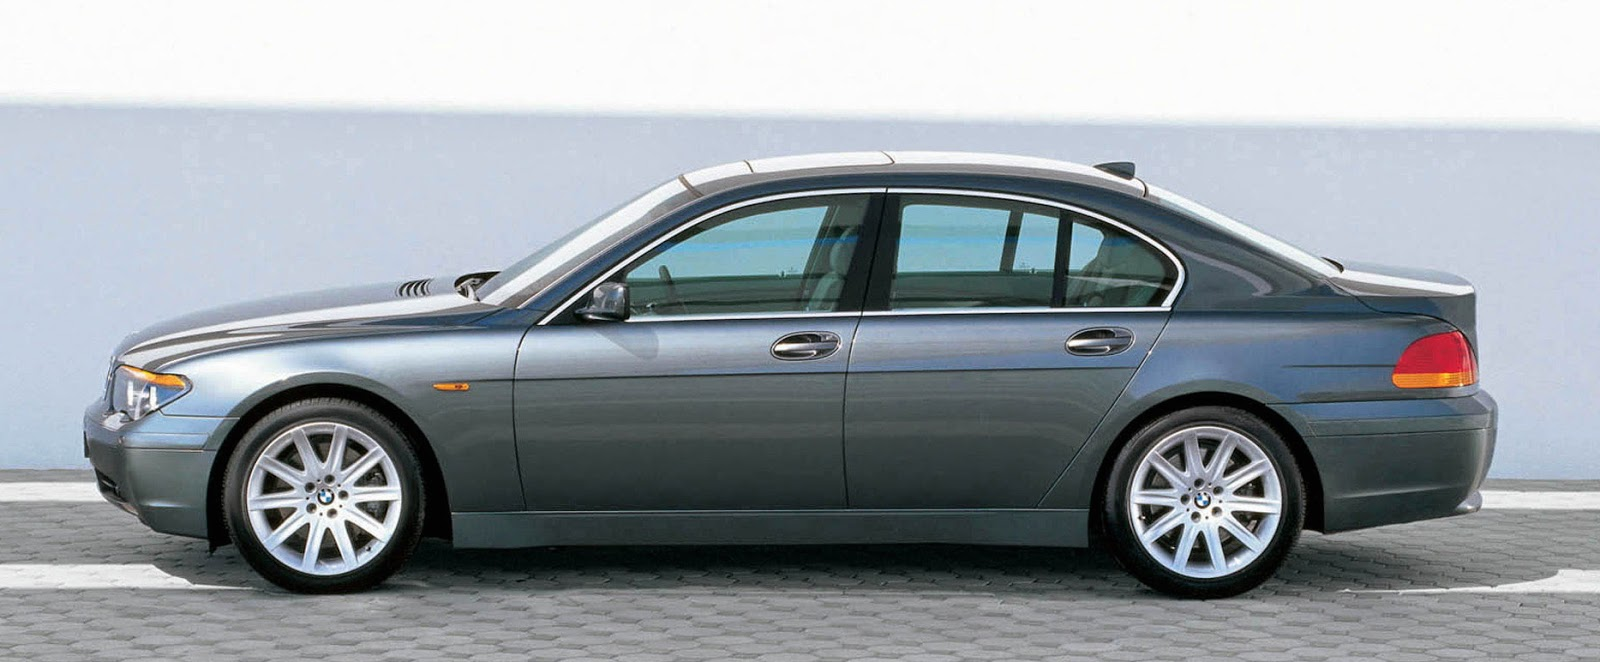 BMW 7 Series 2009 Exterior Side View